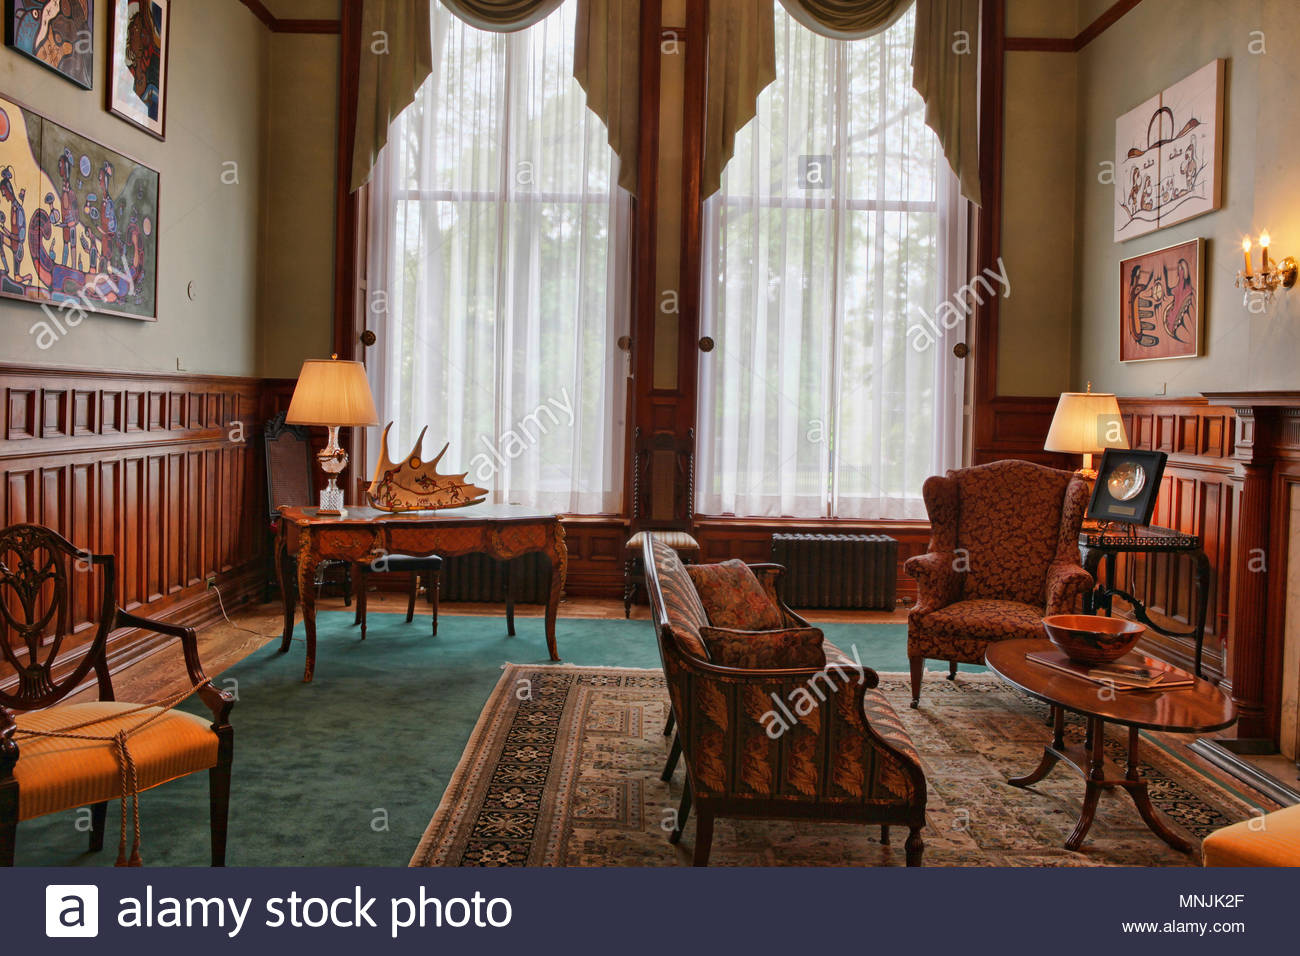 The Northern Room inside the Ontario Legislative Building. The Ontario Legislative Building houses the viceregal suite of the Lieutenant Governor of O Stock Photo